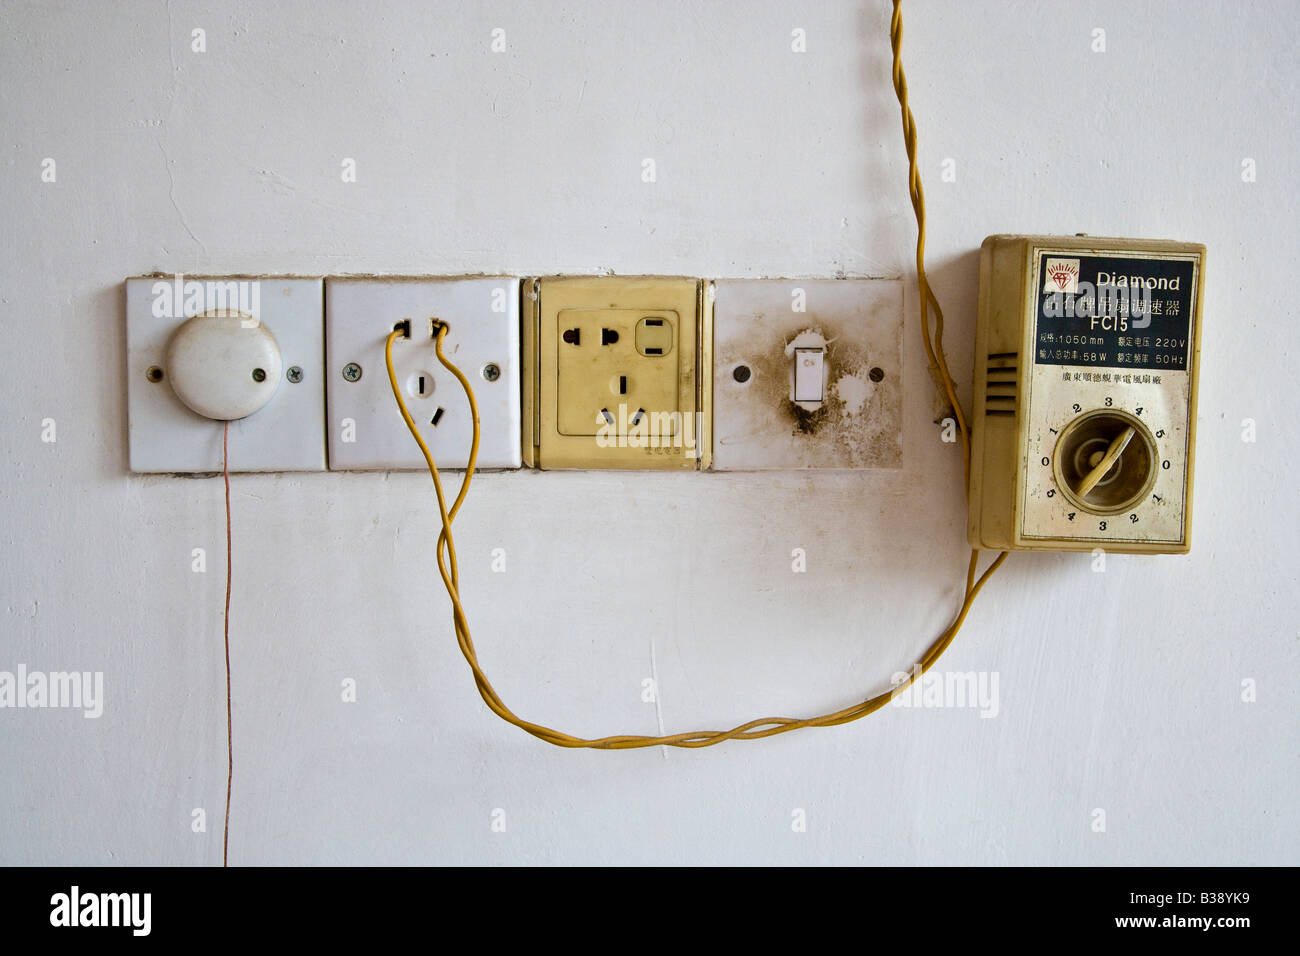 Electrical Sockets Switch Fan Speed Controller And Improvised Plug Wiring With On Wall Of Chinese Home Jmh3184